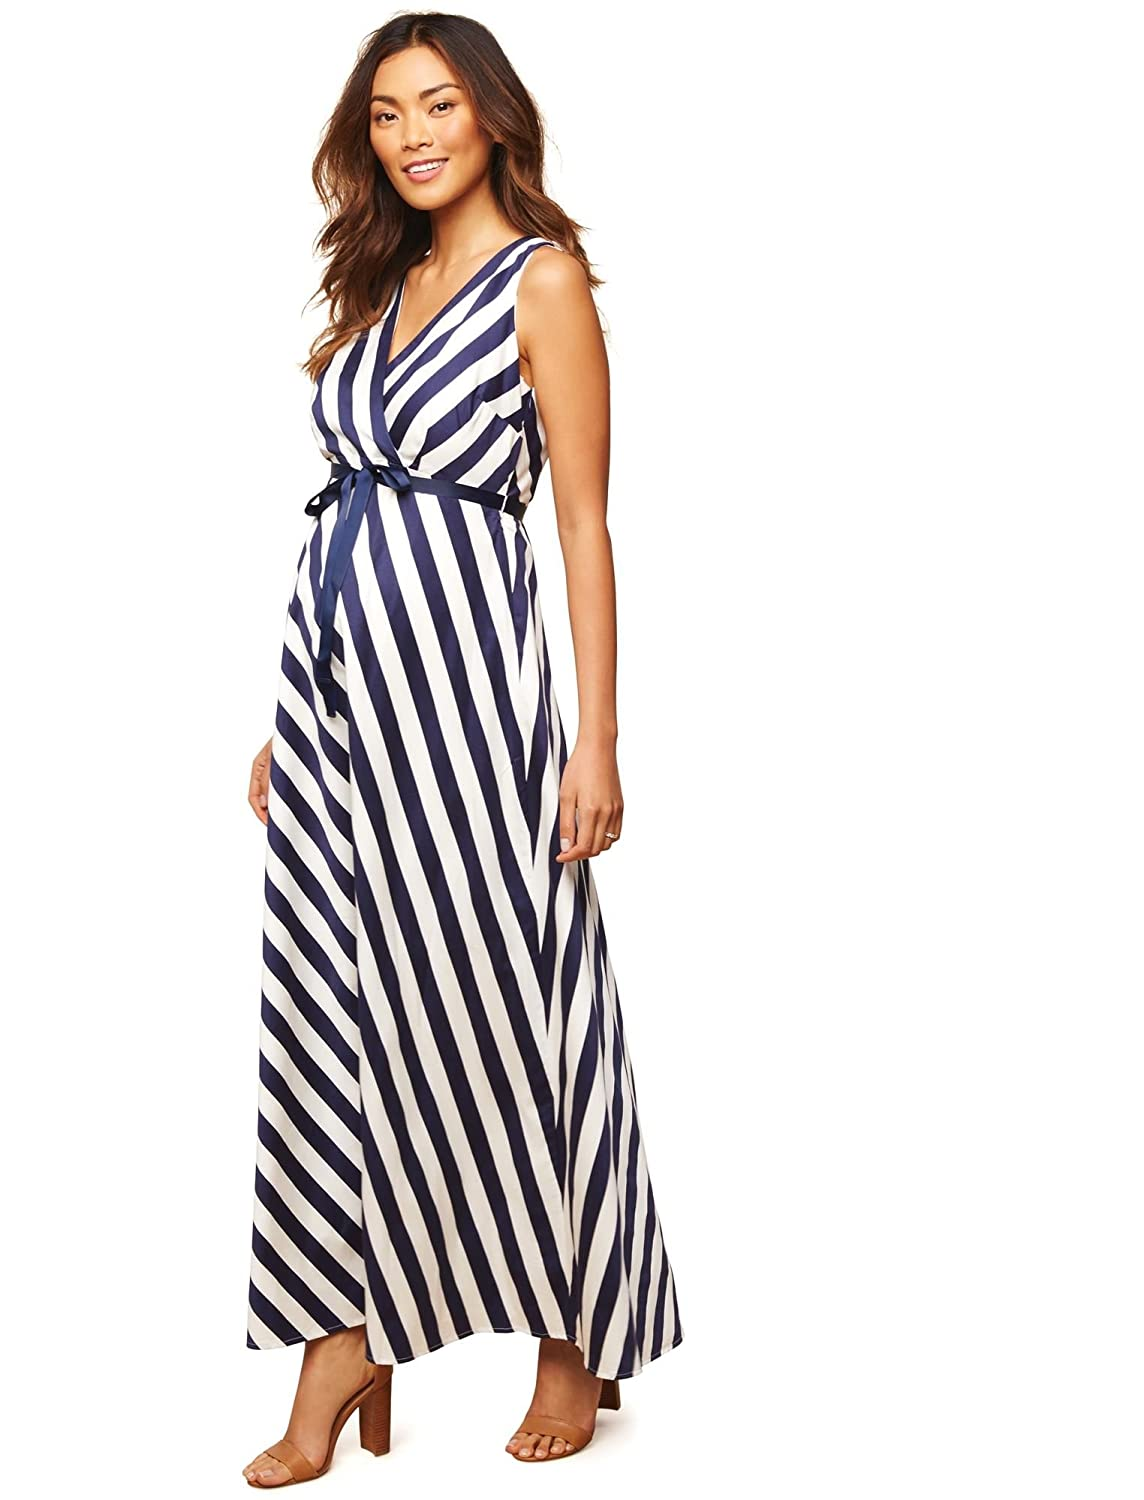 Jessica simpson sash belt maternity dress at amazon womens jessica simpson sash belt maternity dress at amazon womens clothing store ombrellifo Image collections